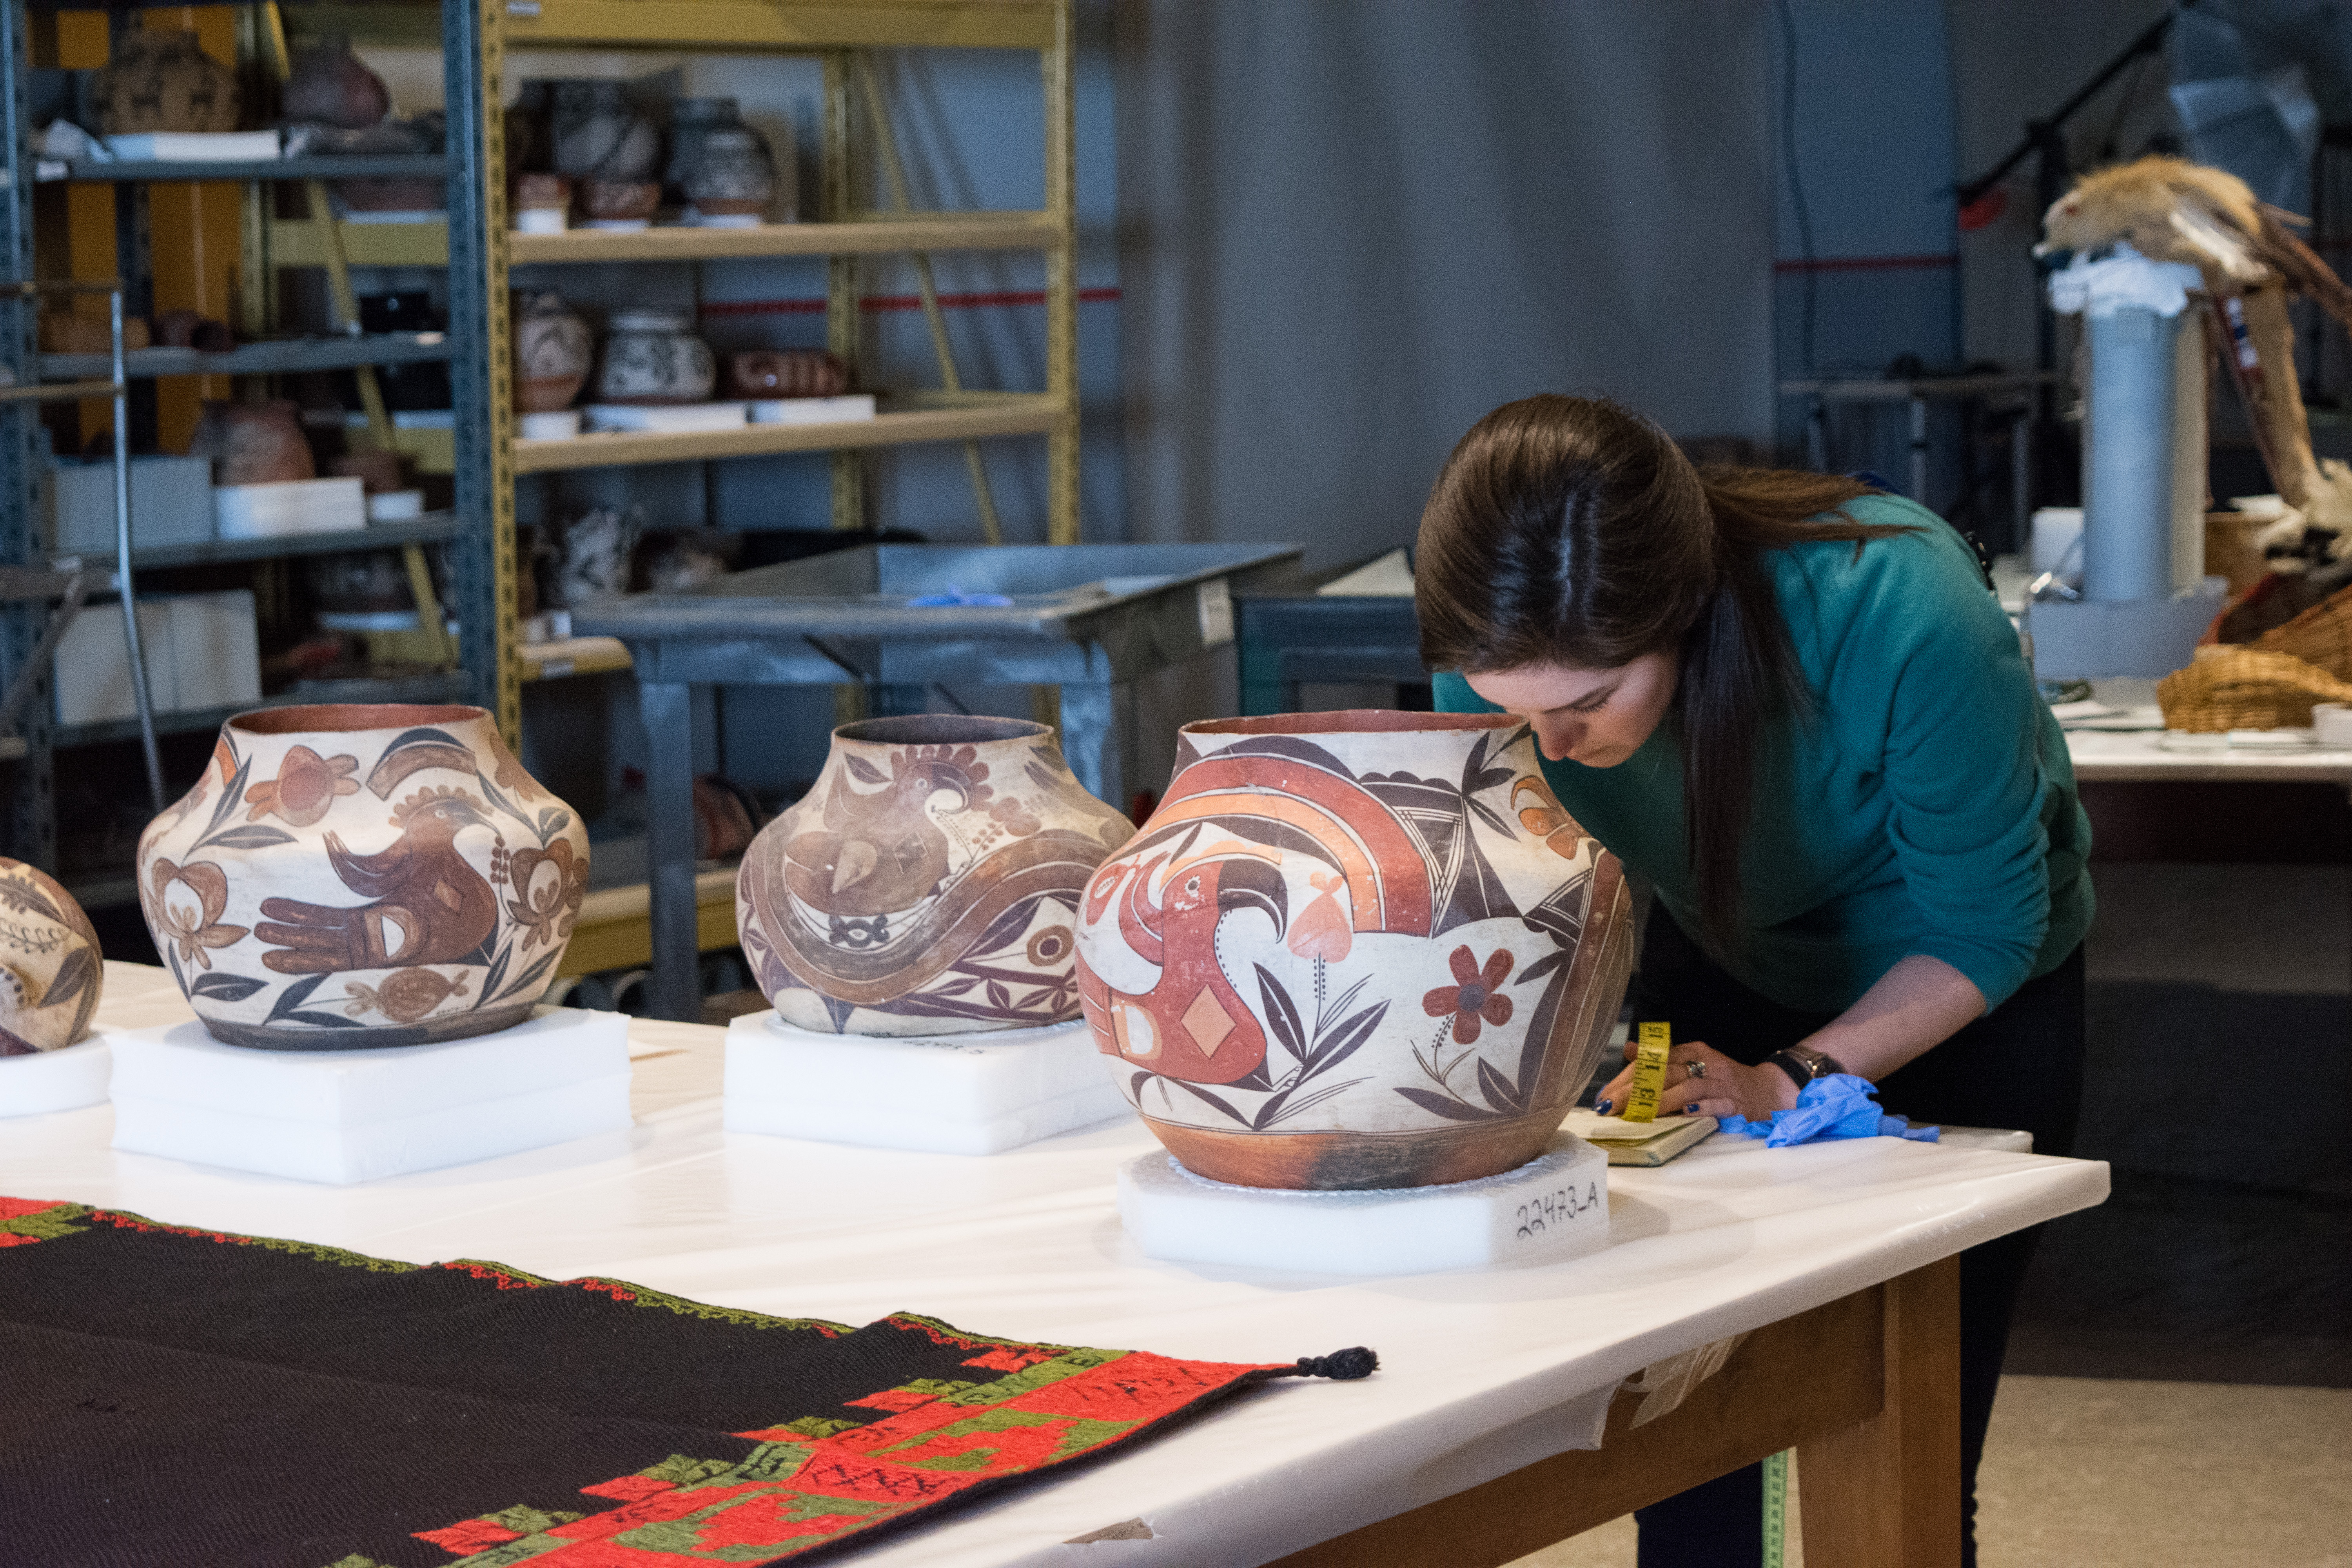 A woman stands behind a table with three large, painted pots. She holds a measuring tape and leans over the table to write something down.